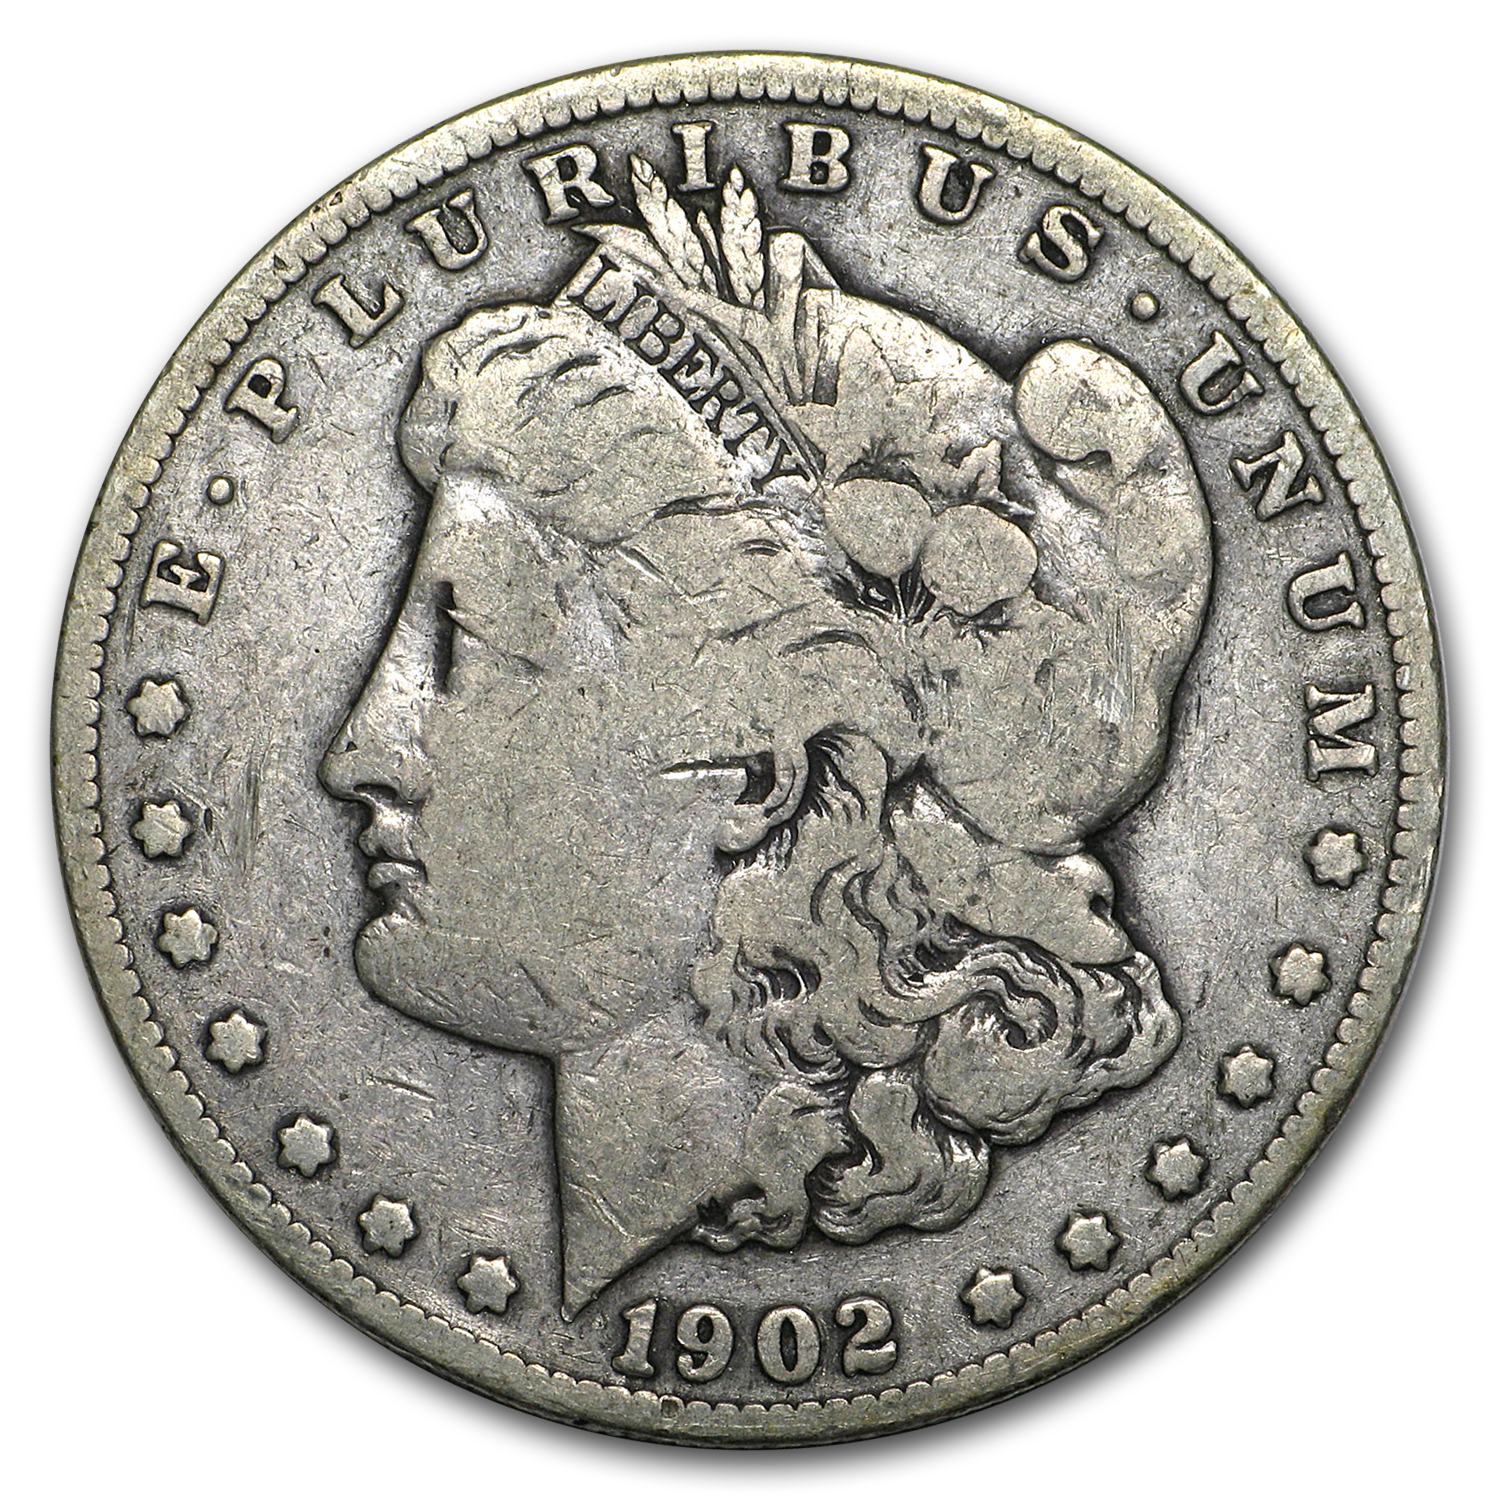 1902-S Morgan Dollar - Very Good